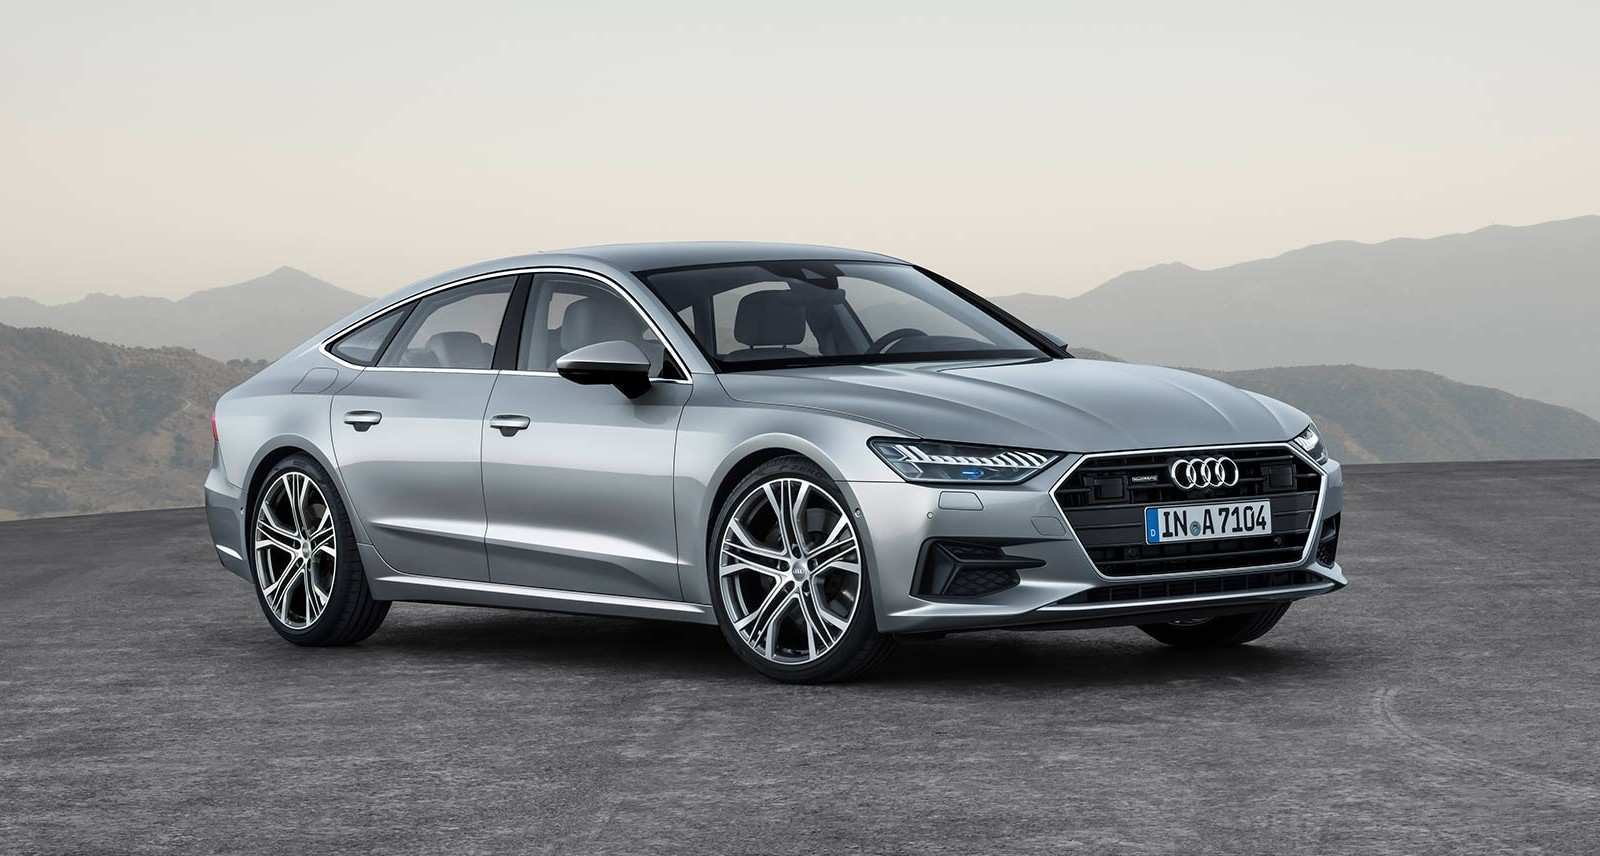 37 The Best 2019 Audi A7 Release Date And Concept